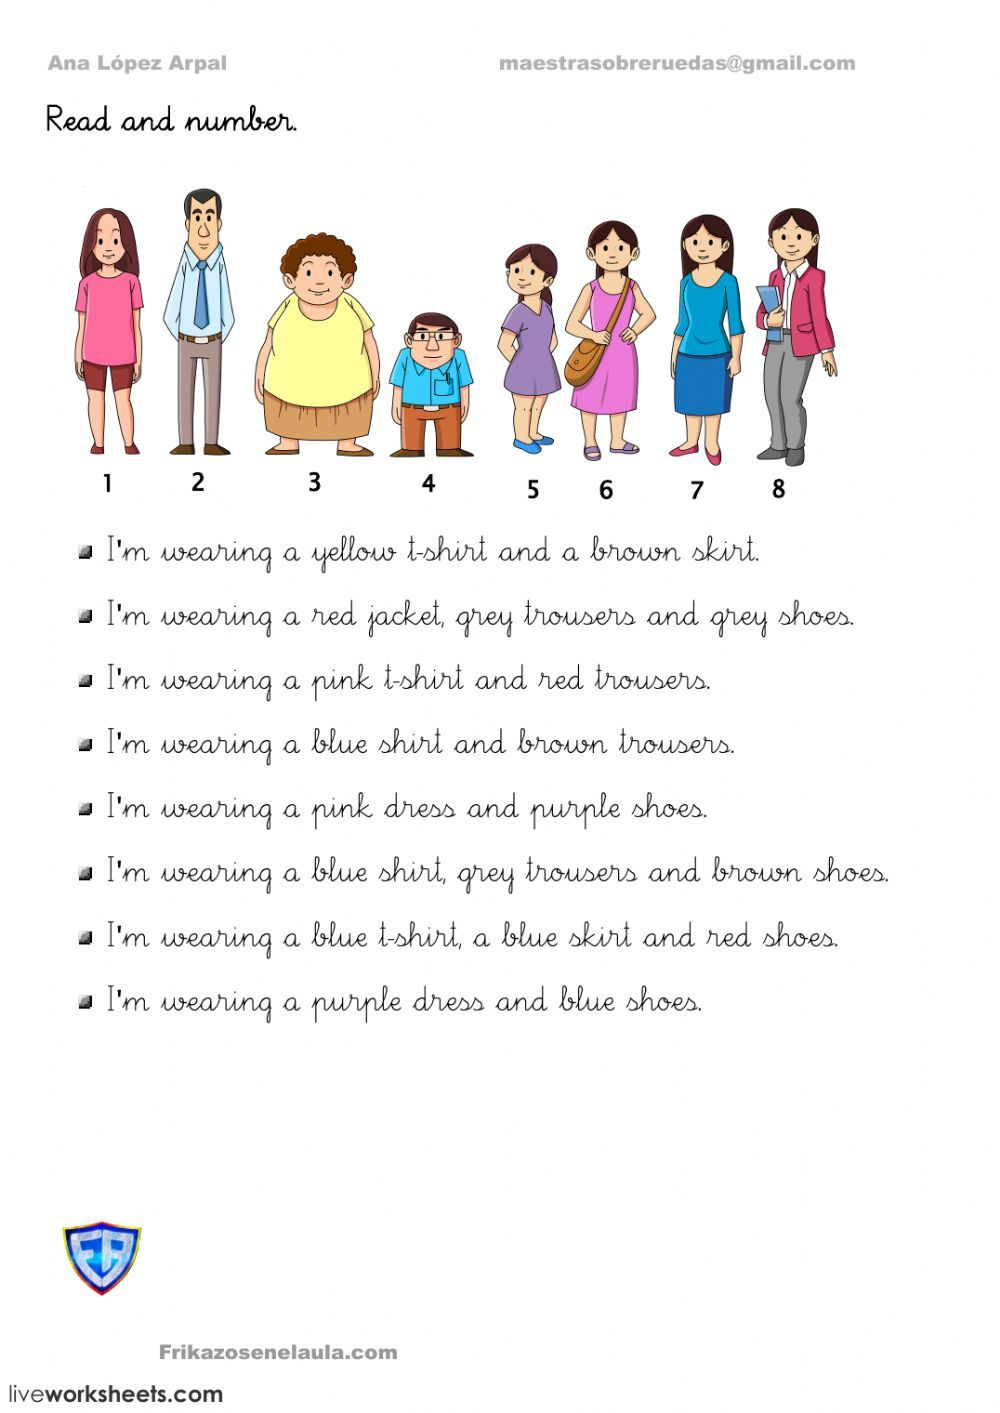 Clothes interactive and downloadable worksheet. You can do